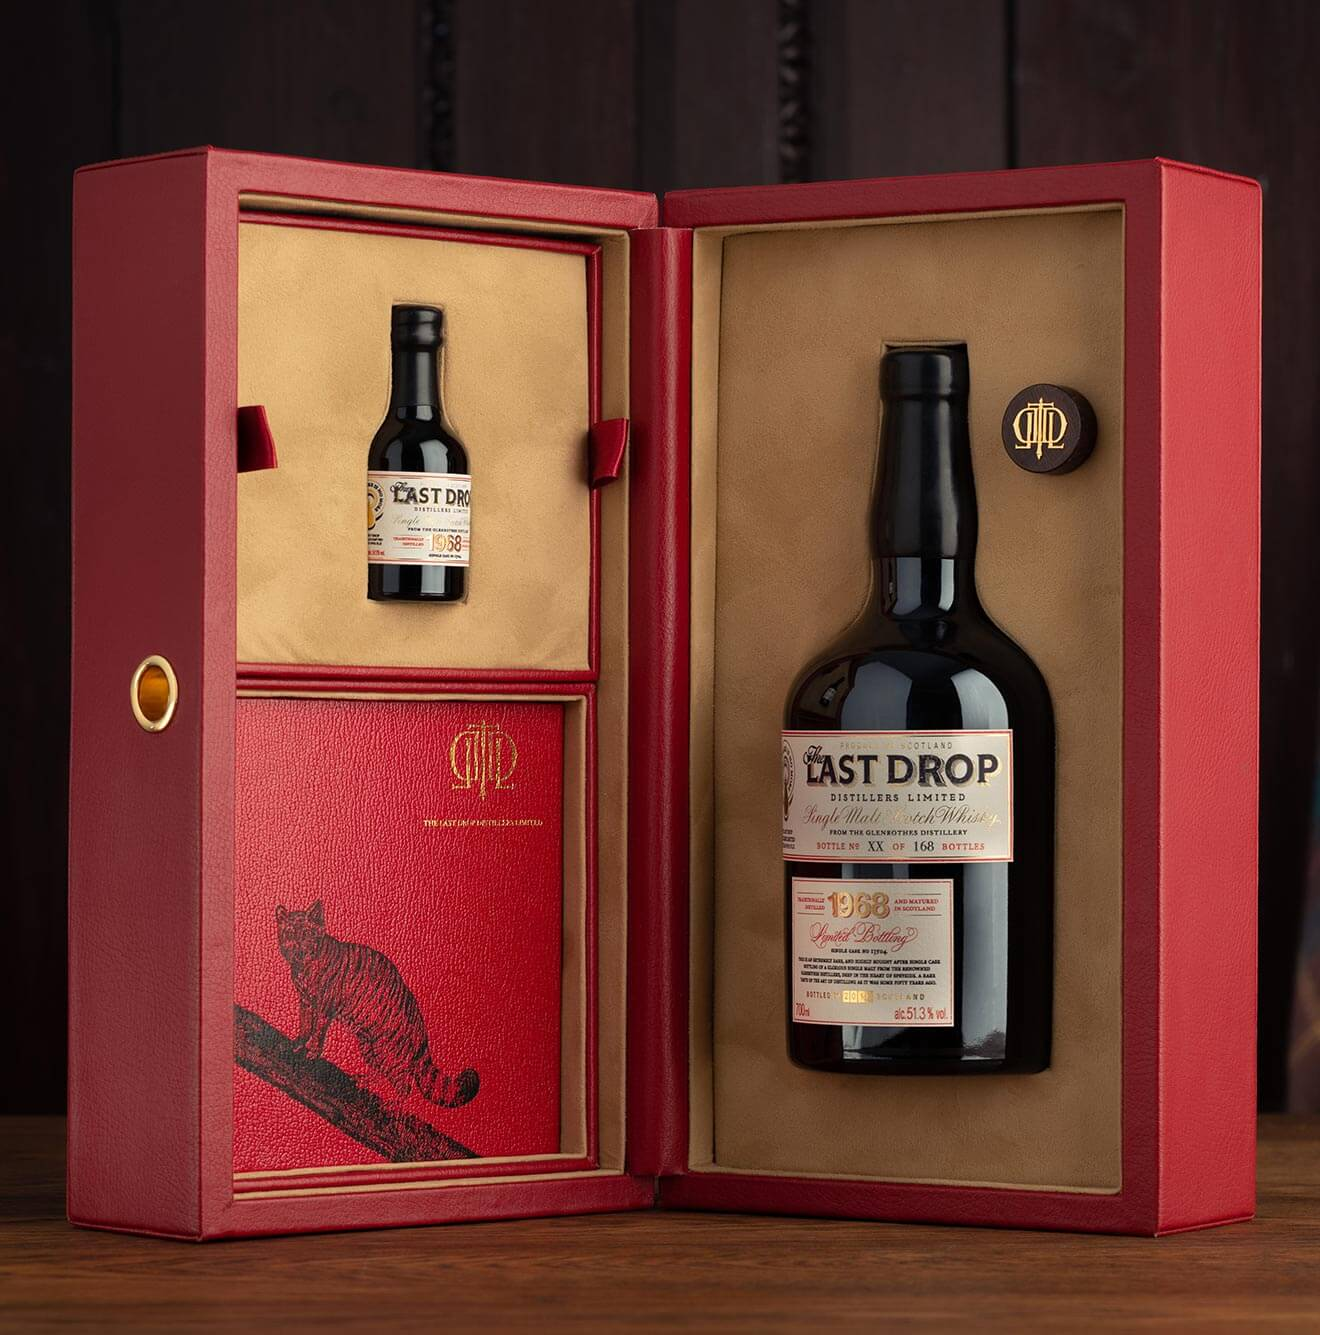 The Last Drop Distillers Exquisite 50 Year Old Single Malt